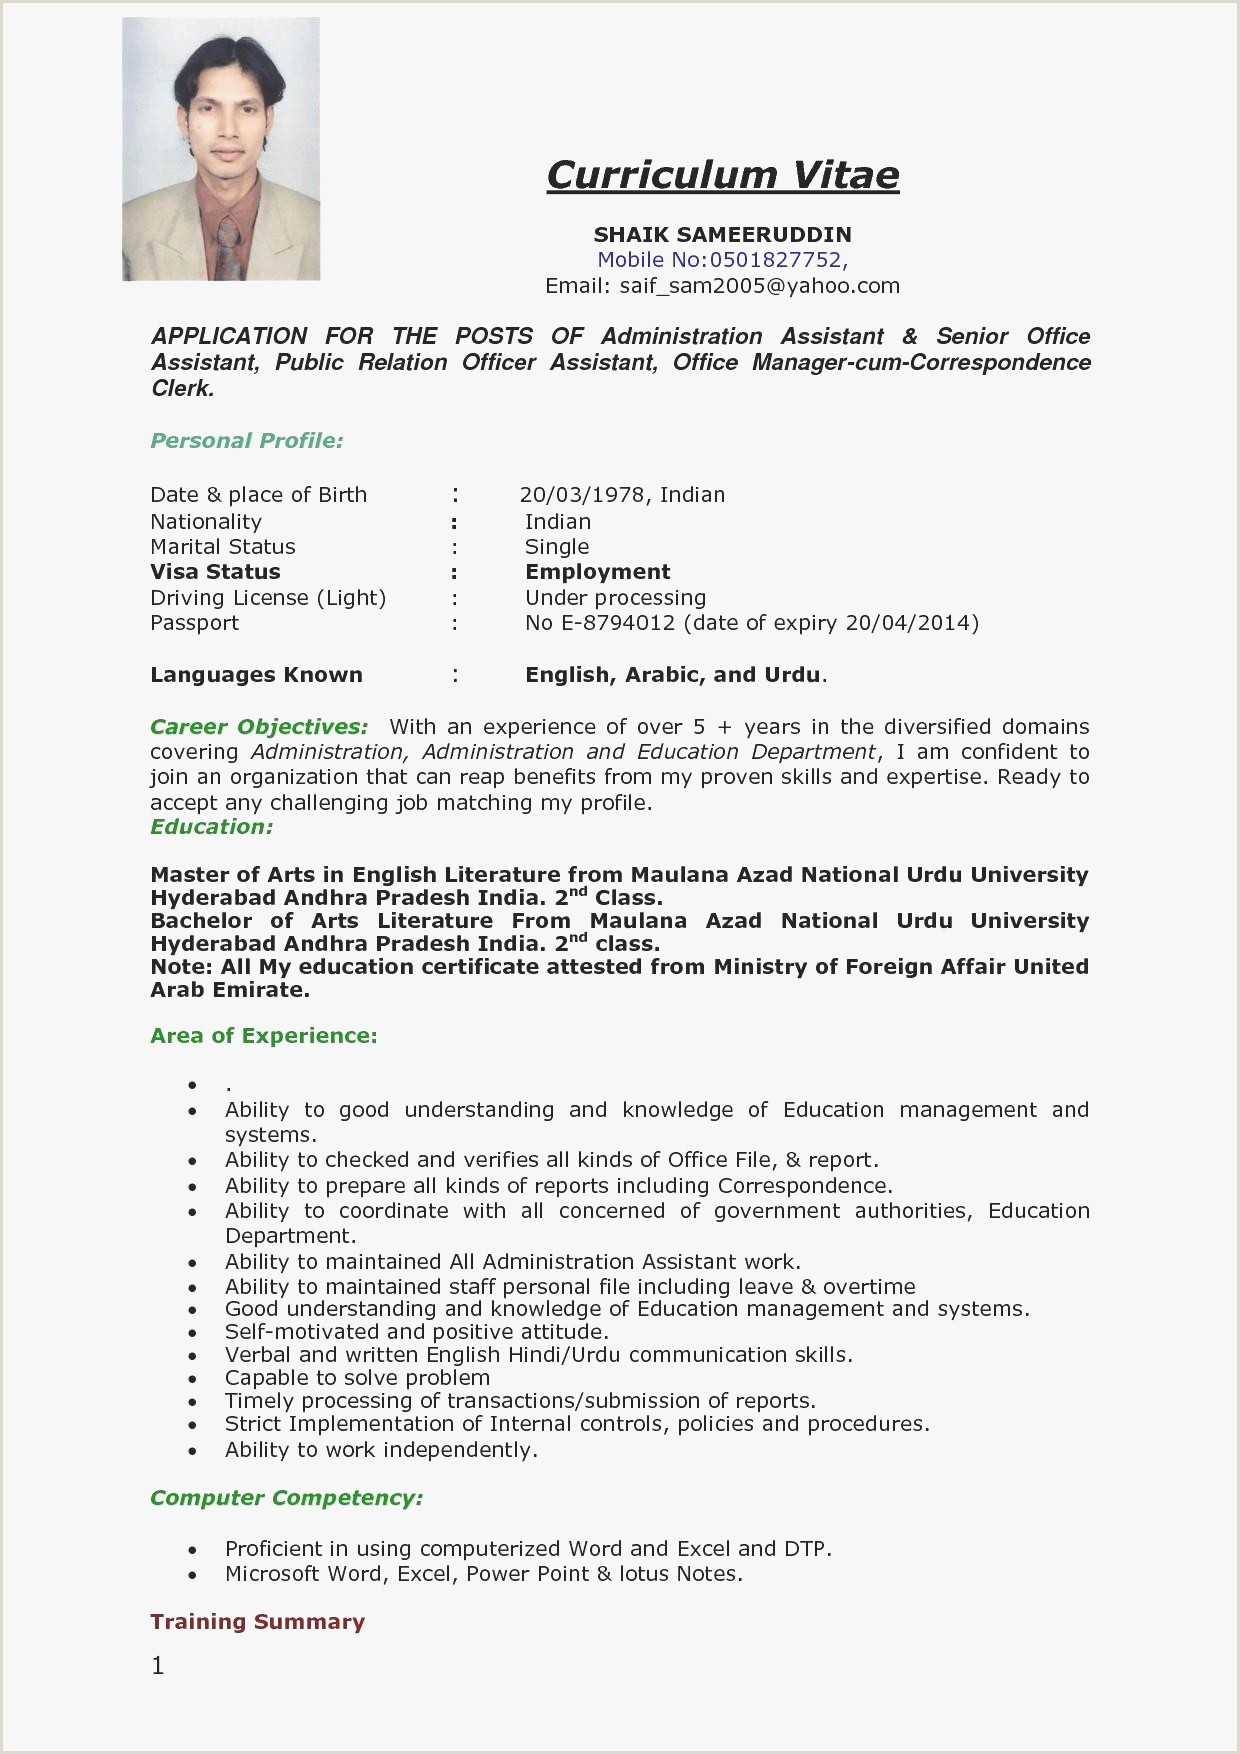 Resume Layouts Samples Professional Job Application Letter